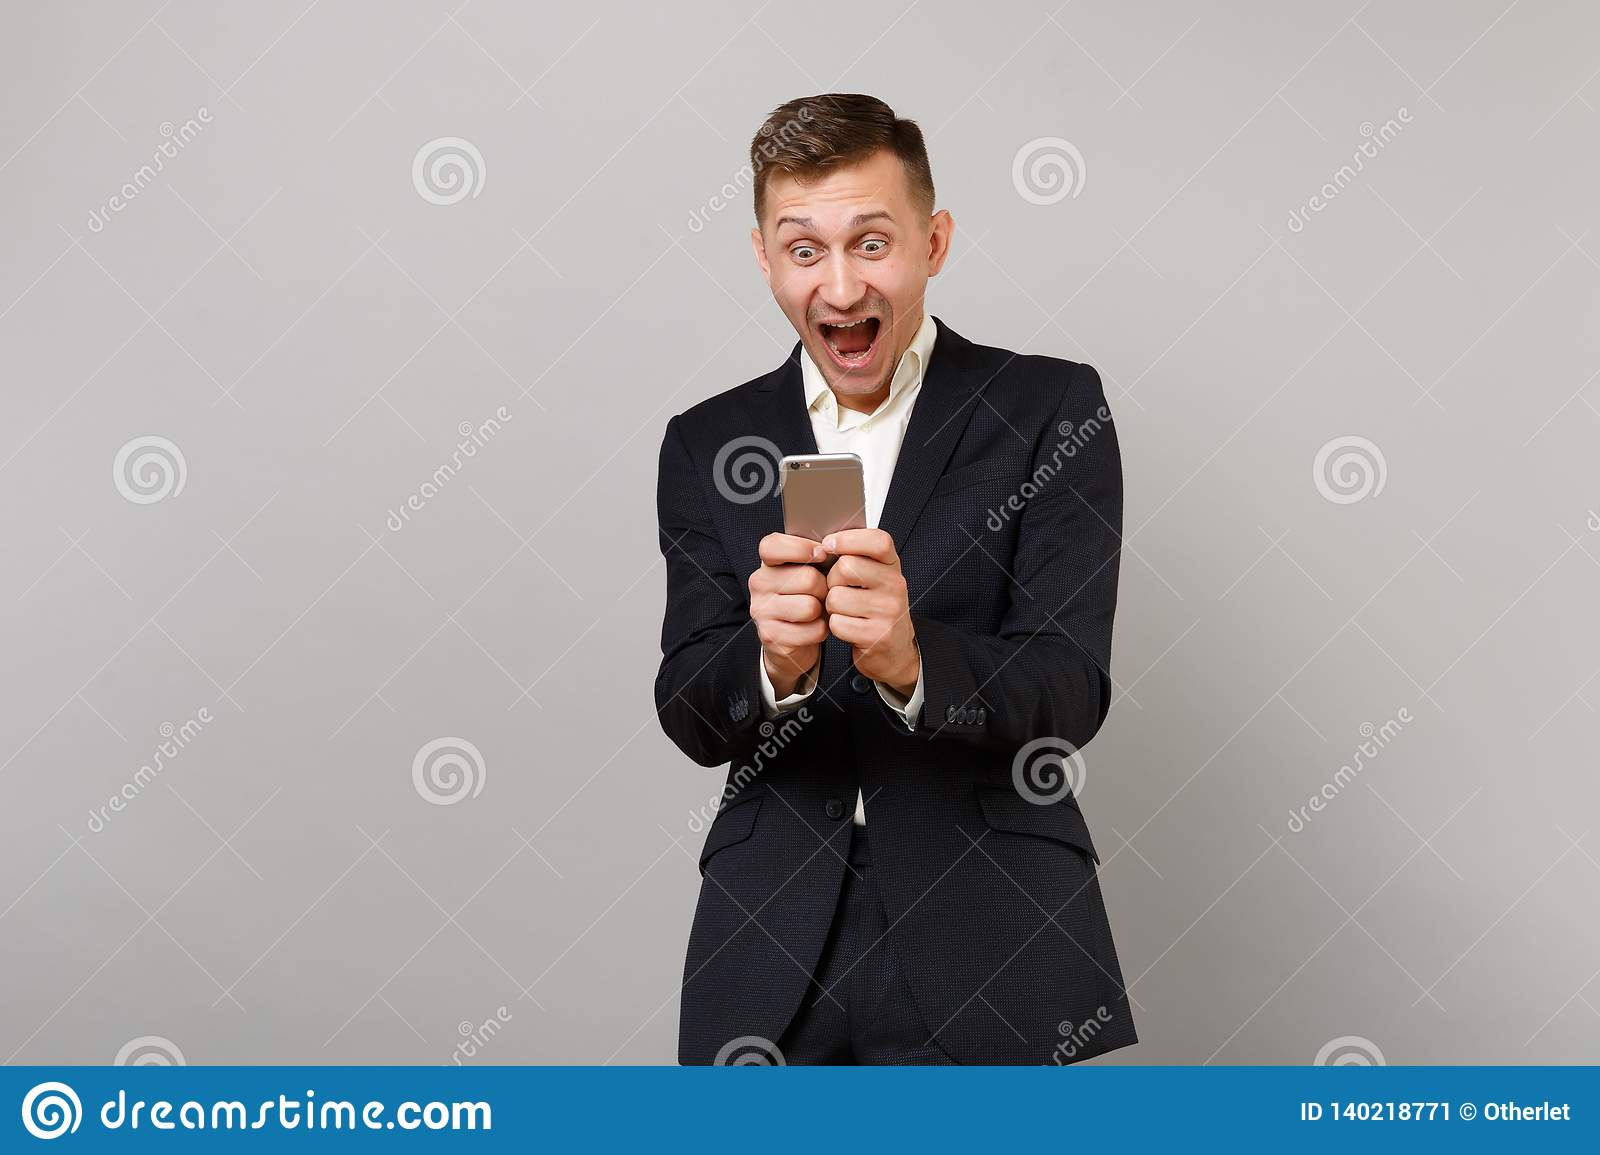 Surprised happy young business man screaming keeping mouth open wide, using mobile phone typing sms message isolated on